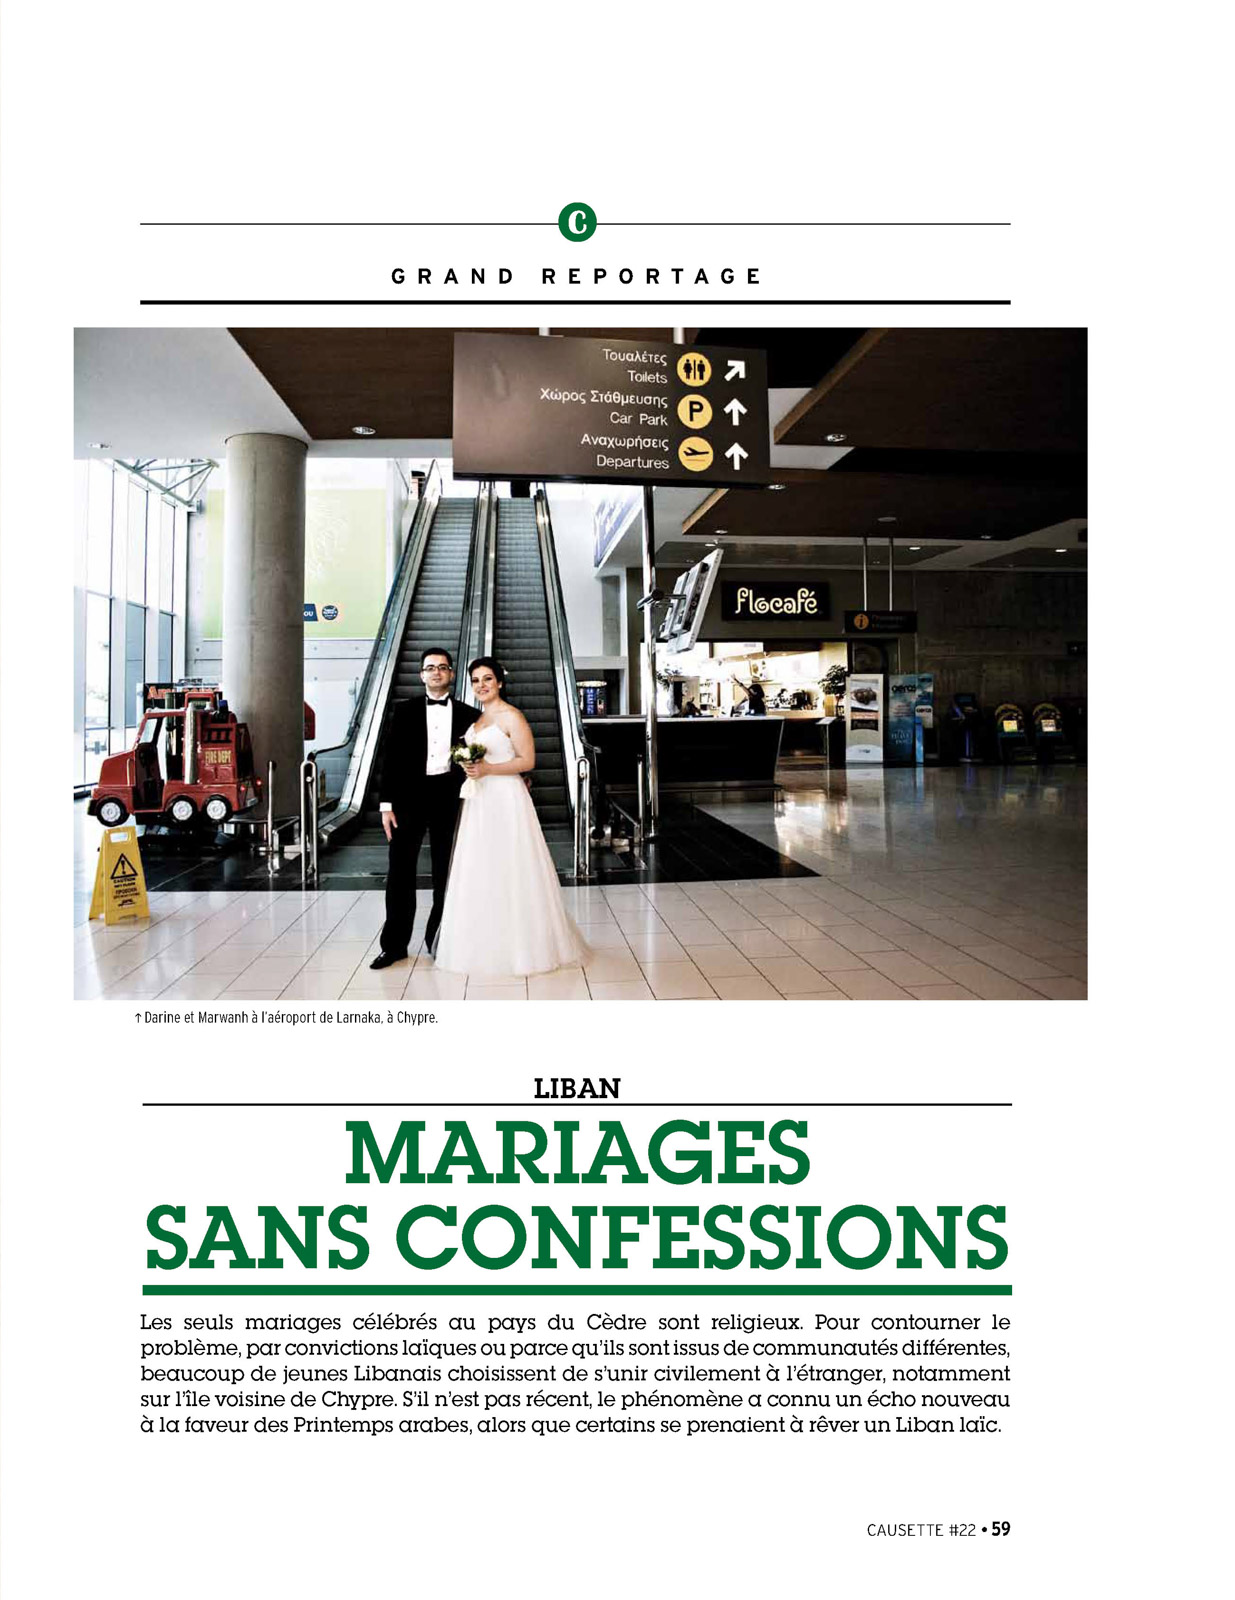 Causette#22_Mariages-sans-confession_Page_1-web